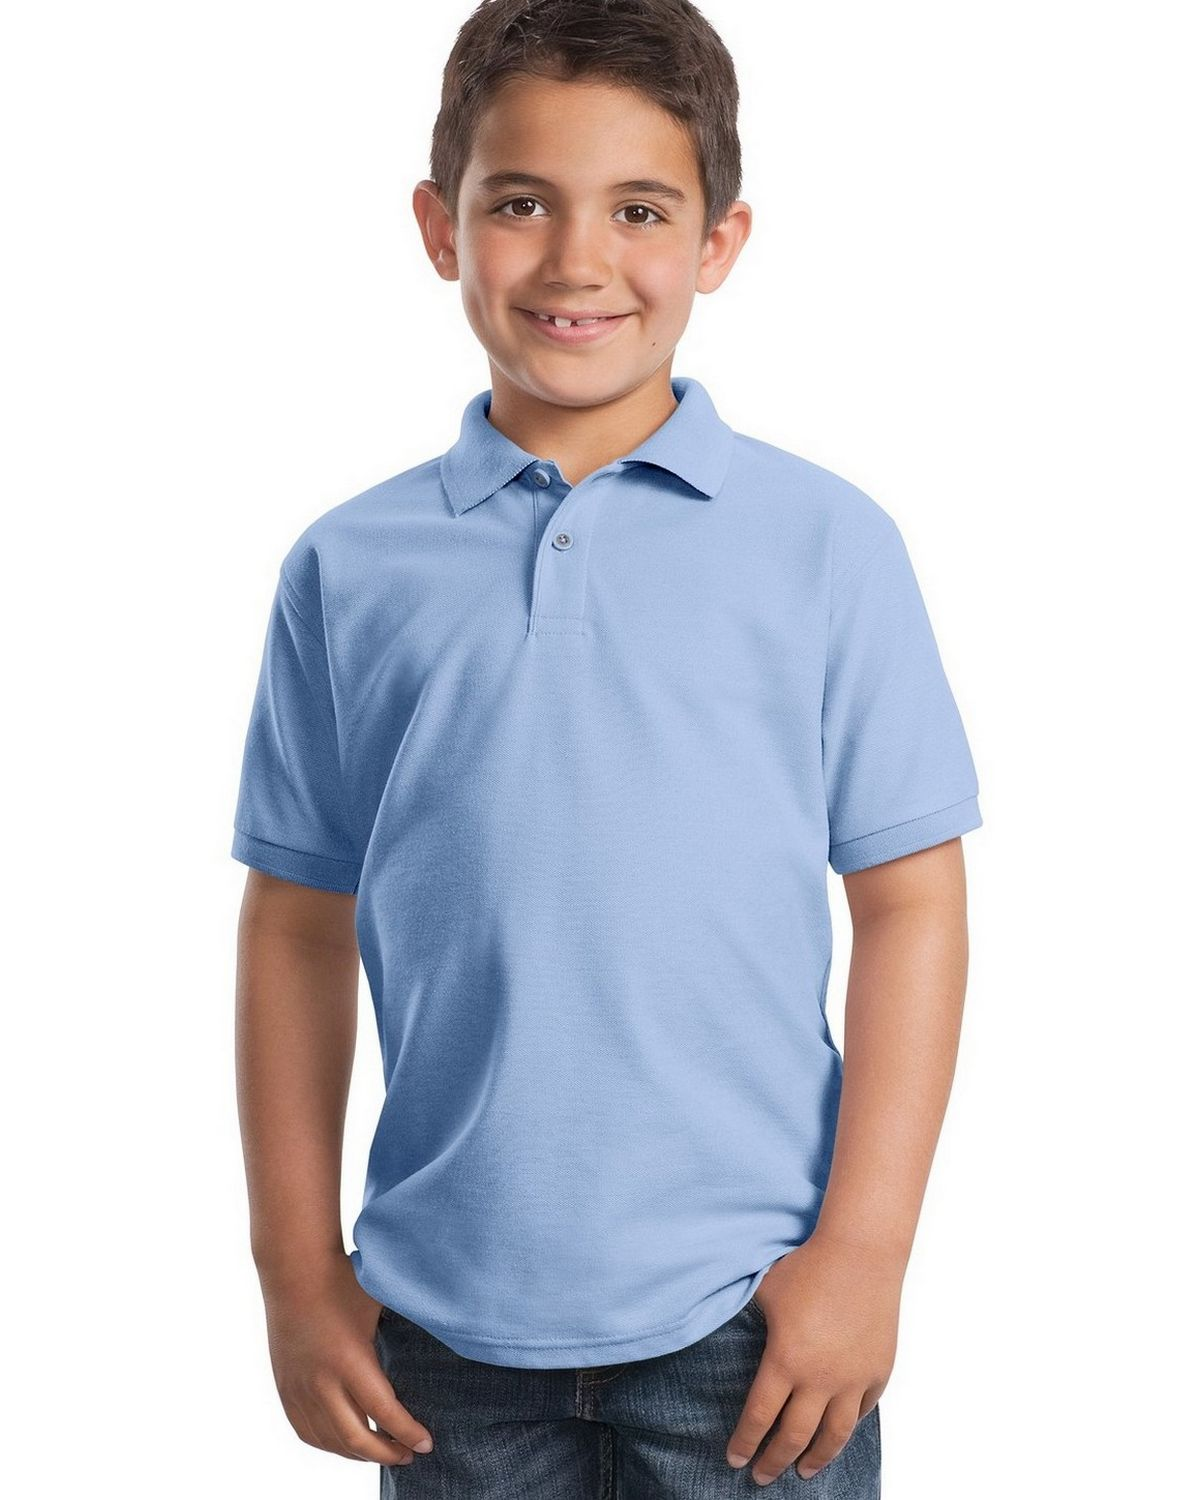 Port Authority Y500 Youth Silk Touch Polo - Light Blue - XS #silk